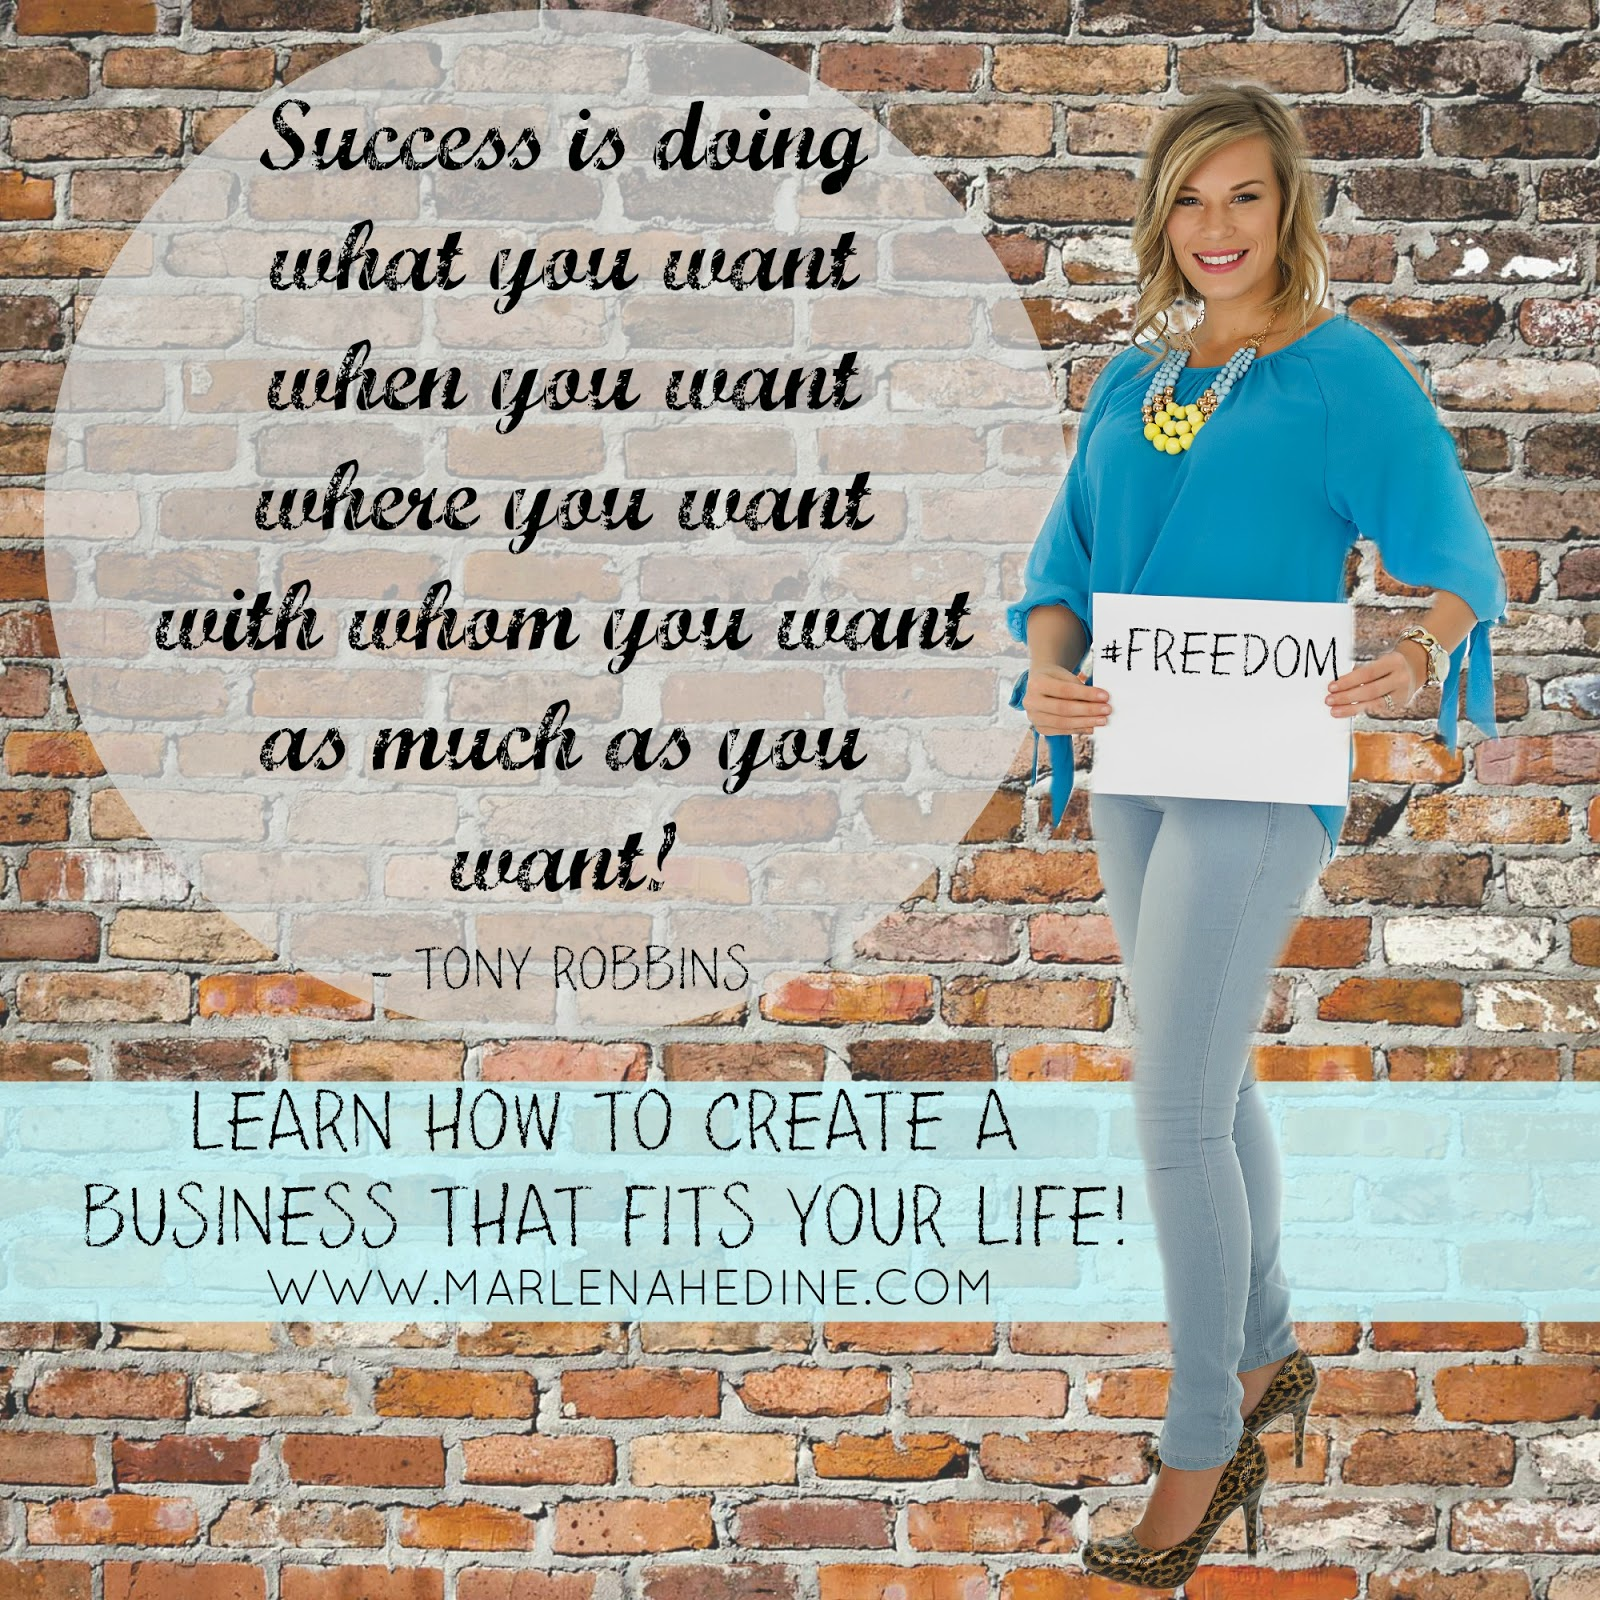 learn how to create a business that fits your life